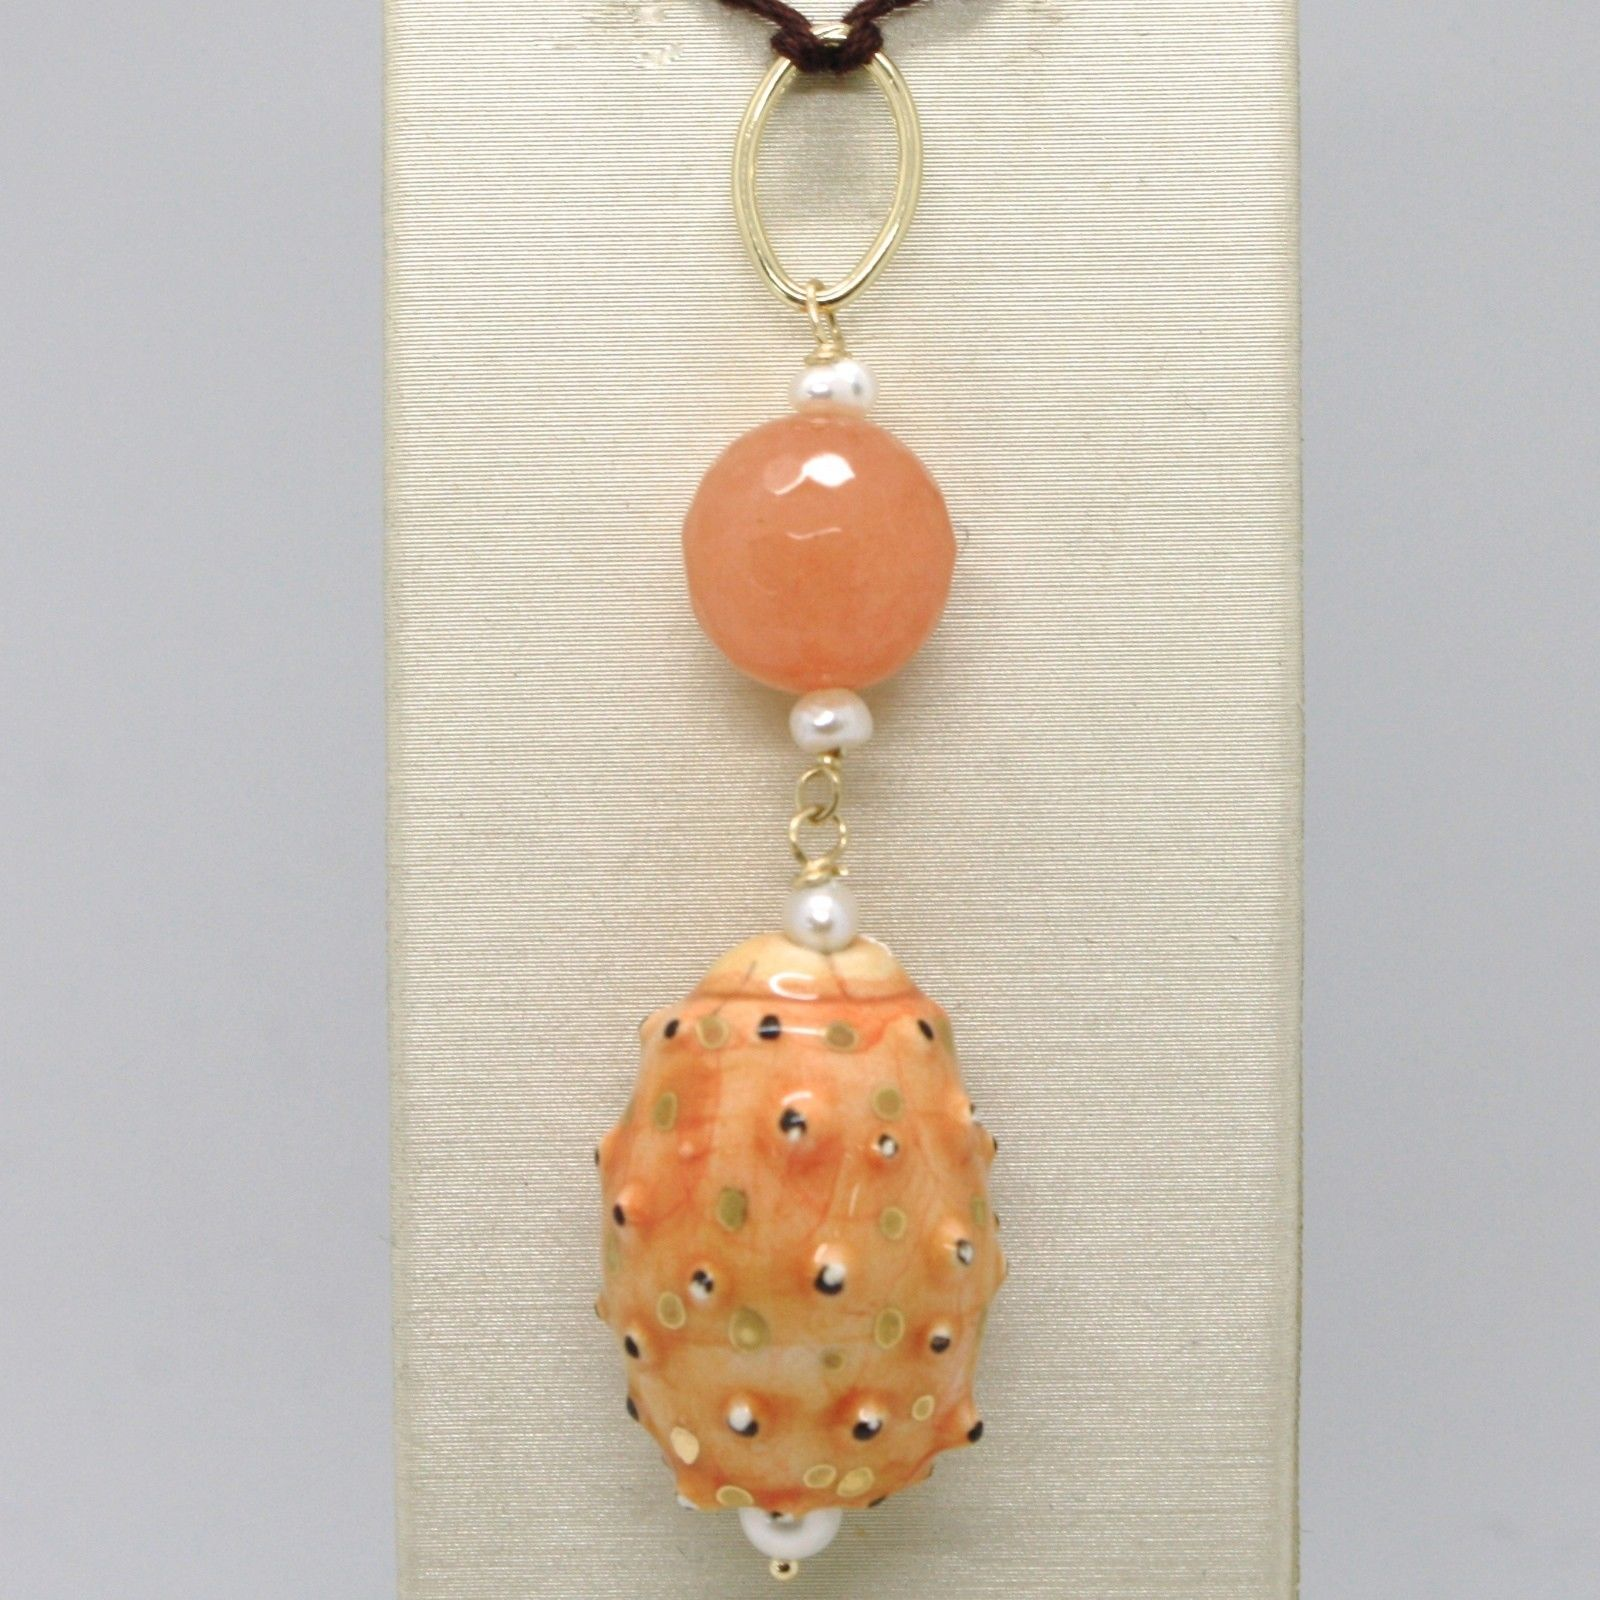 18K YELLOW GOLD PENDANT ORANGE QUARTZ CERAMIC PRICKLY PEAR HAND PAINTED IN ITALY